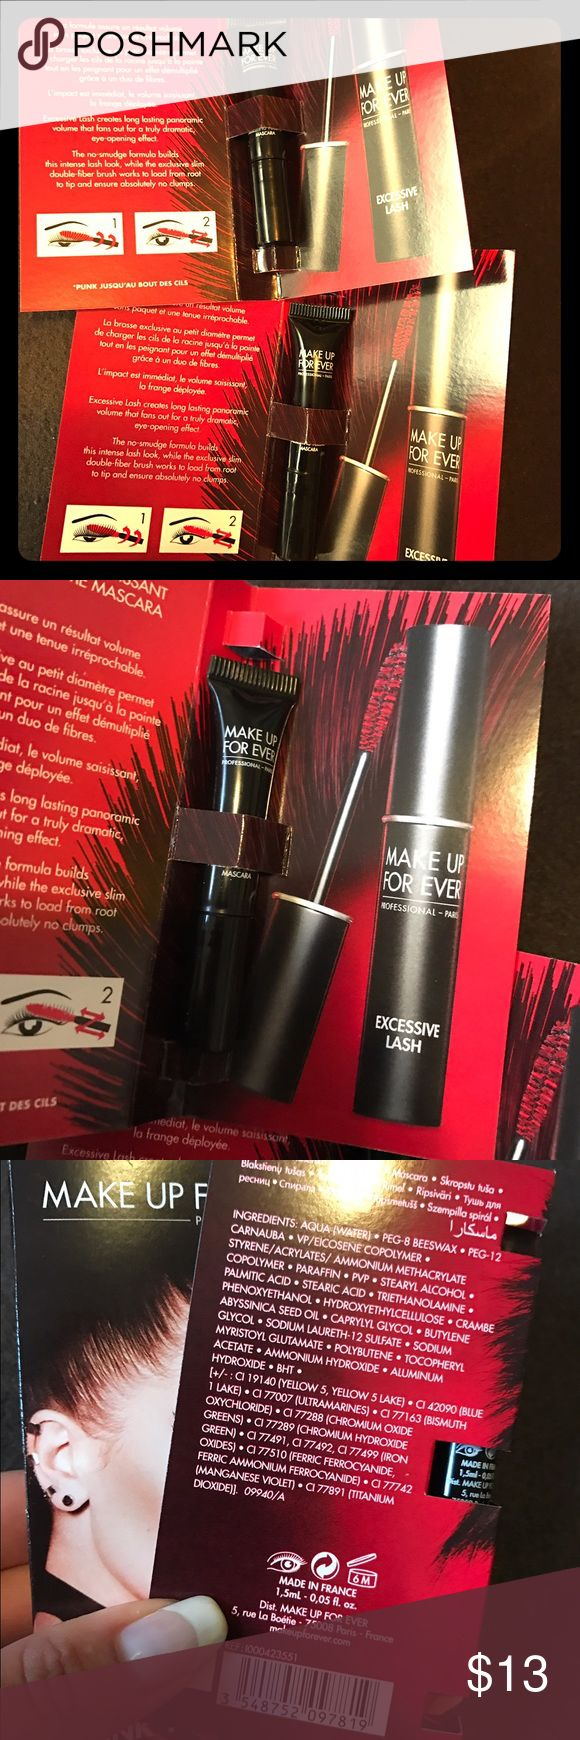 Make Up For Ever Excessive Lash Mascara Brand new set of two - Make Up For Ever Excessive Lash , Punk your lashes - black mascara (0.05 oz EACH) , comes with two. great for on the go. Fast shipping Makeup Forever Makeup Mascara